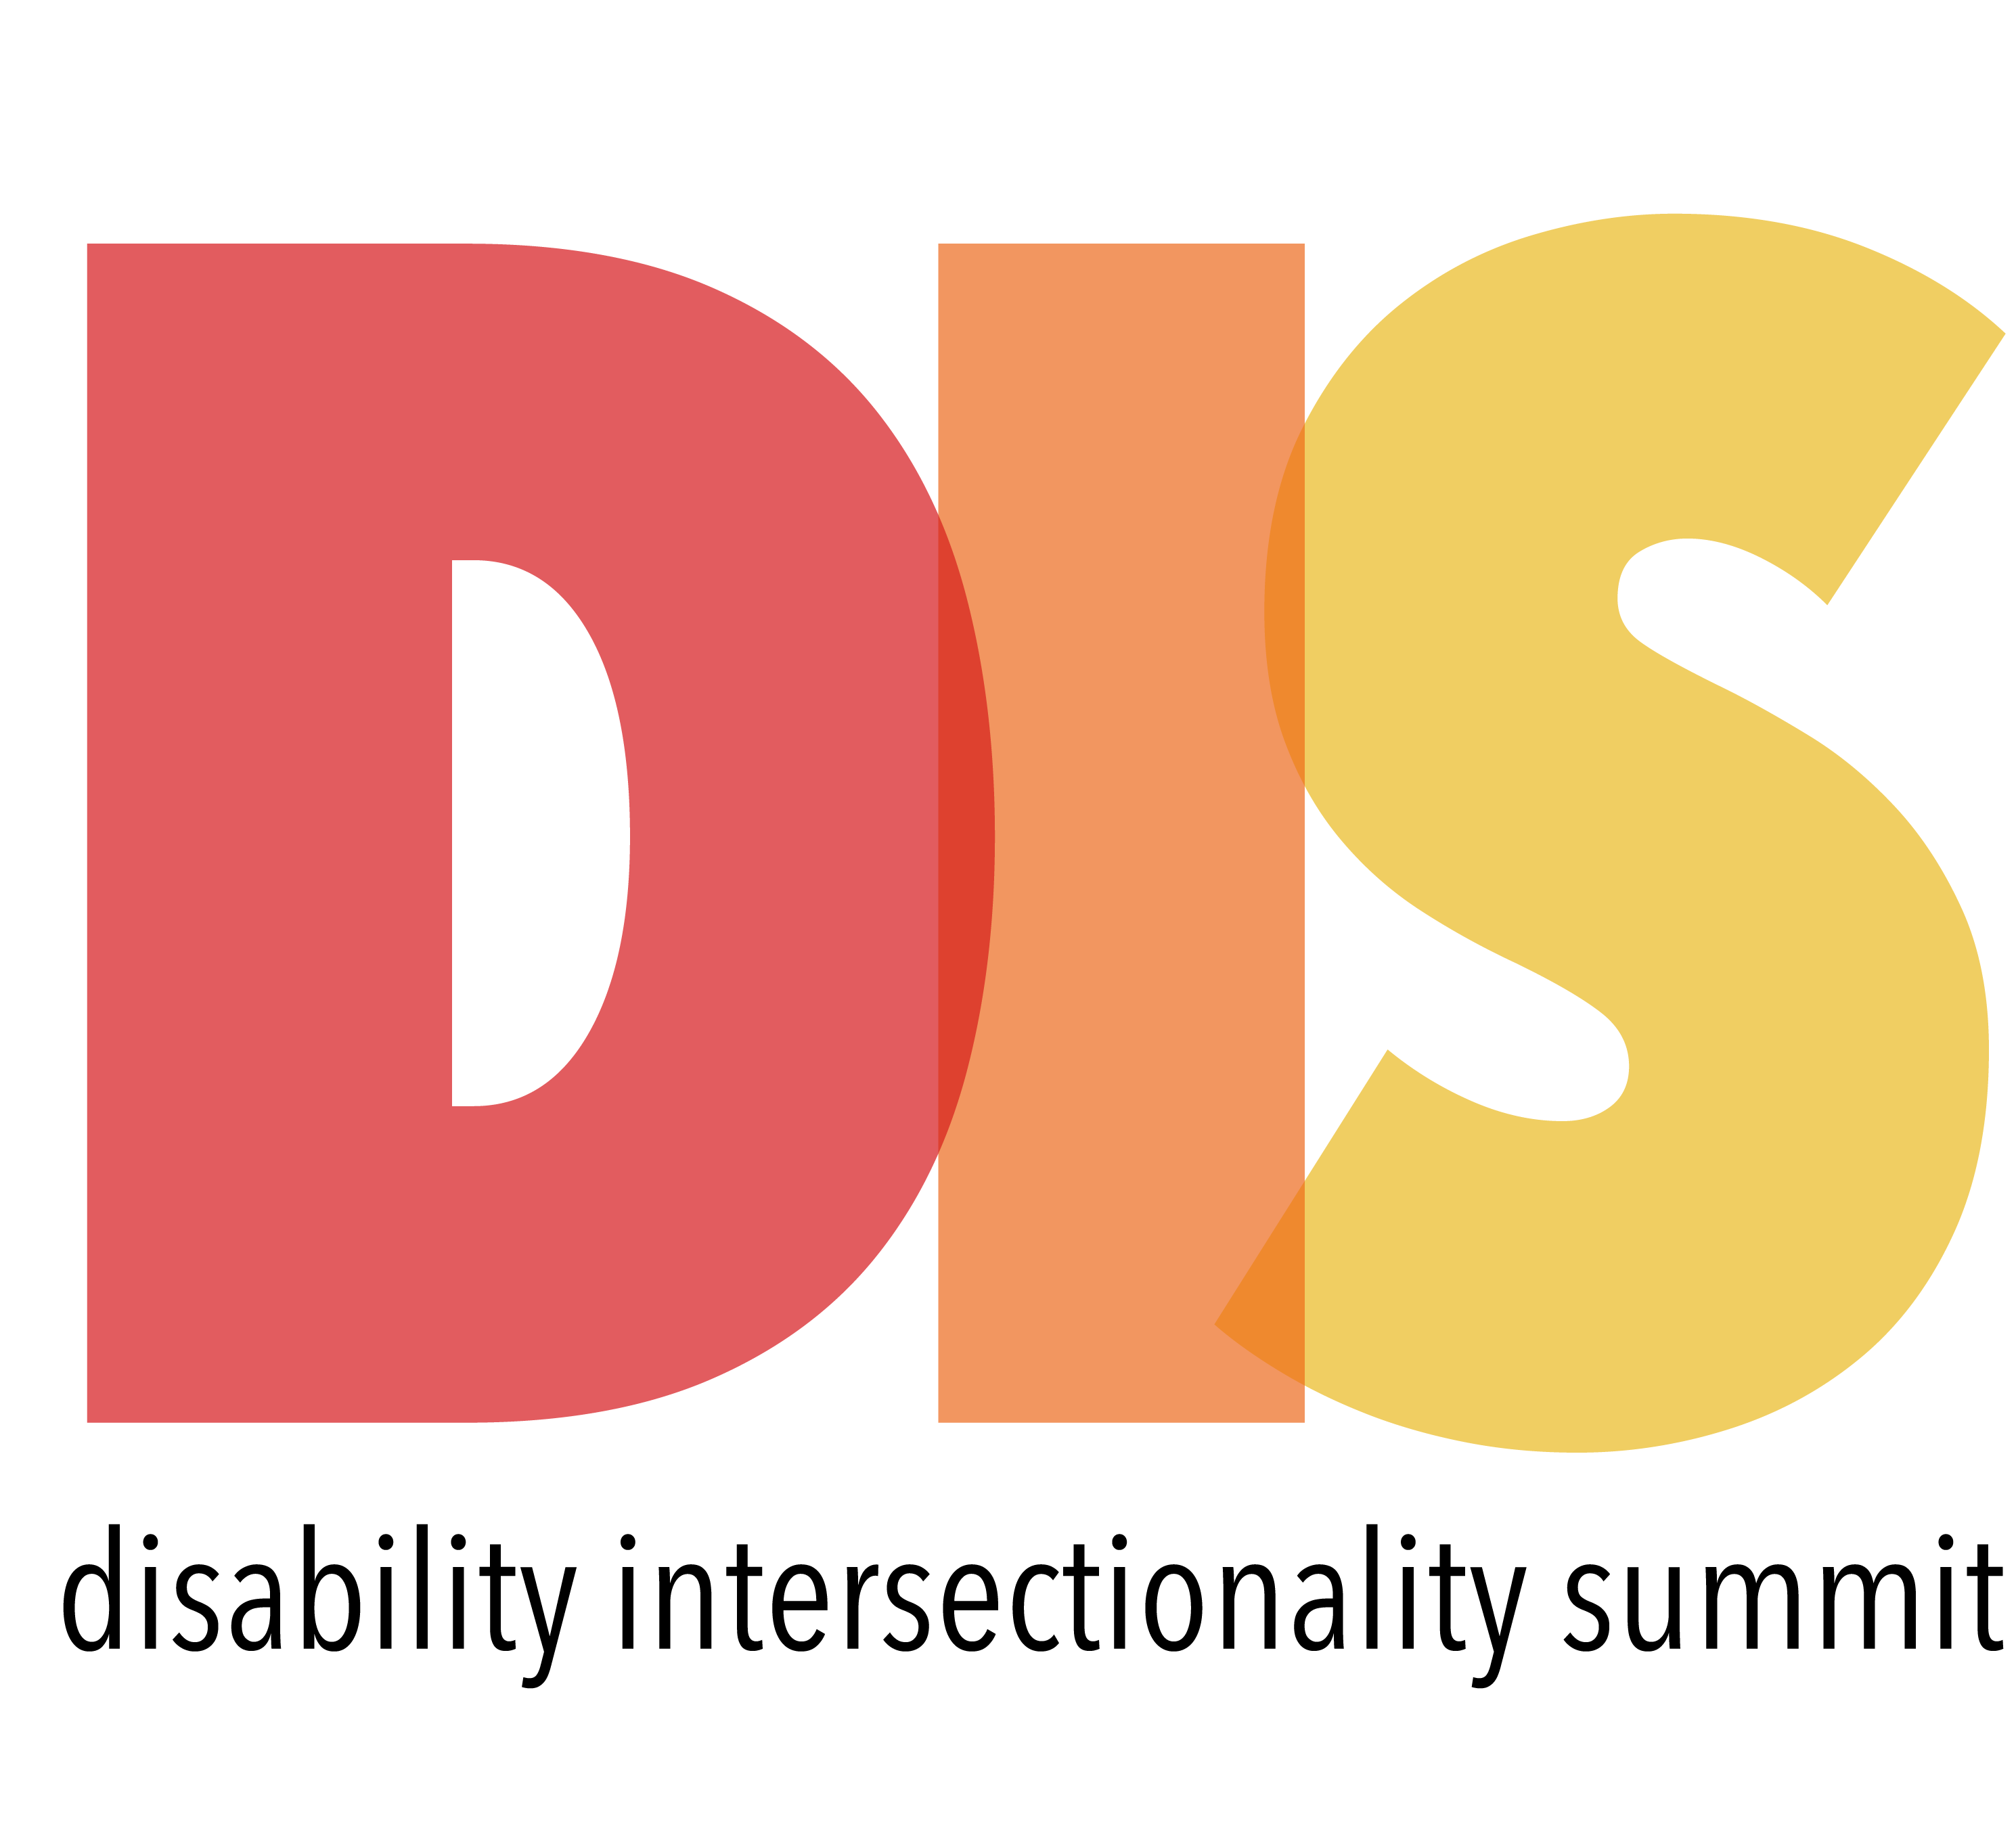 Image of DIS logo: the letters DIS with text below